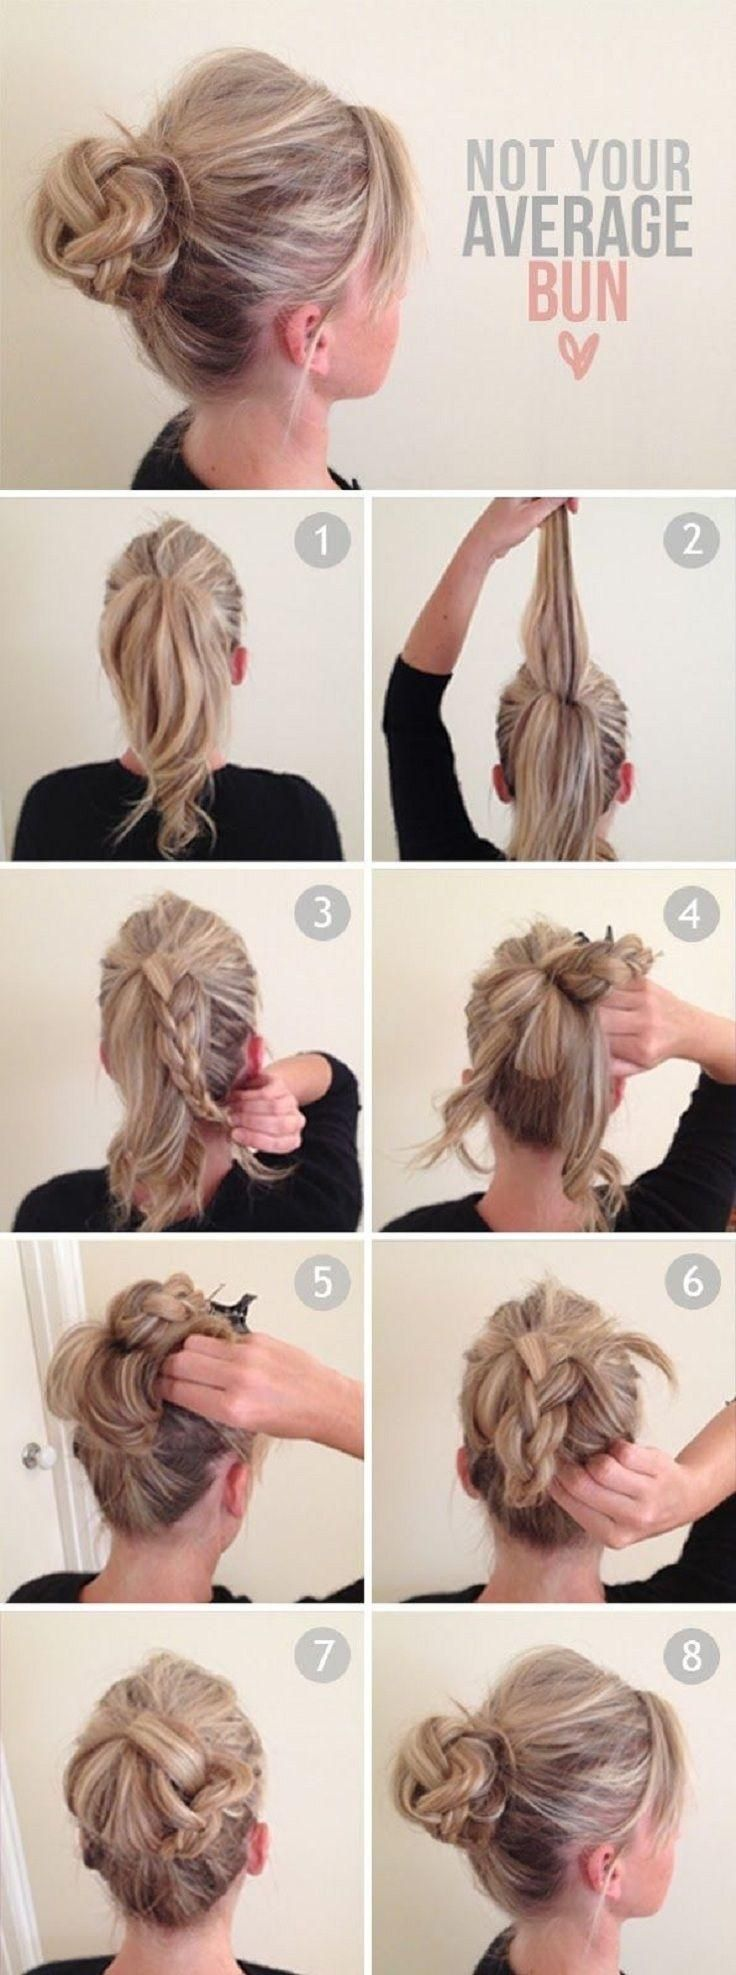 Hairstyle tutorials for this fall